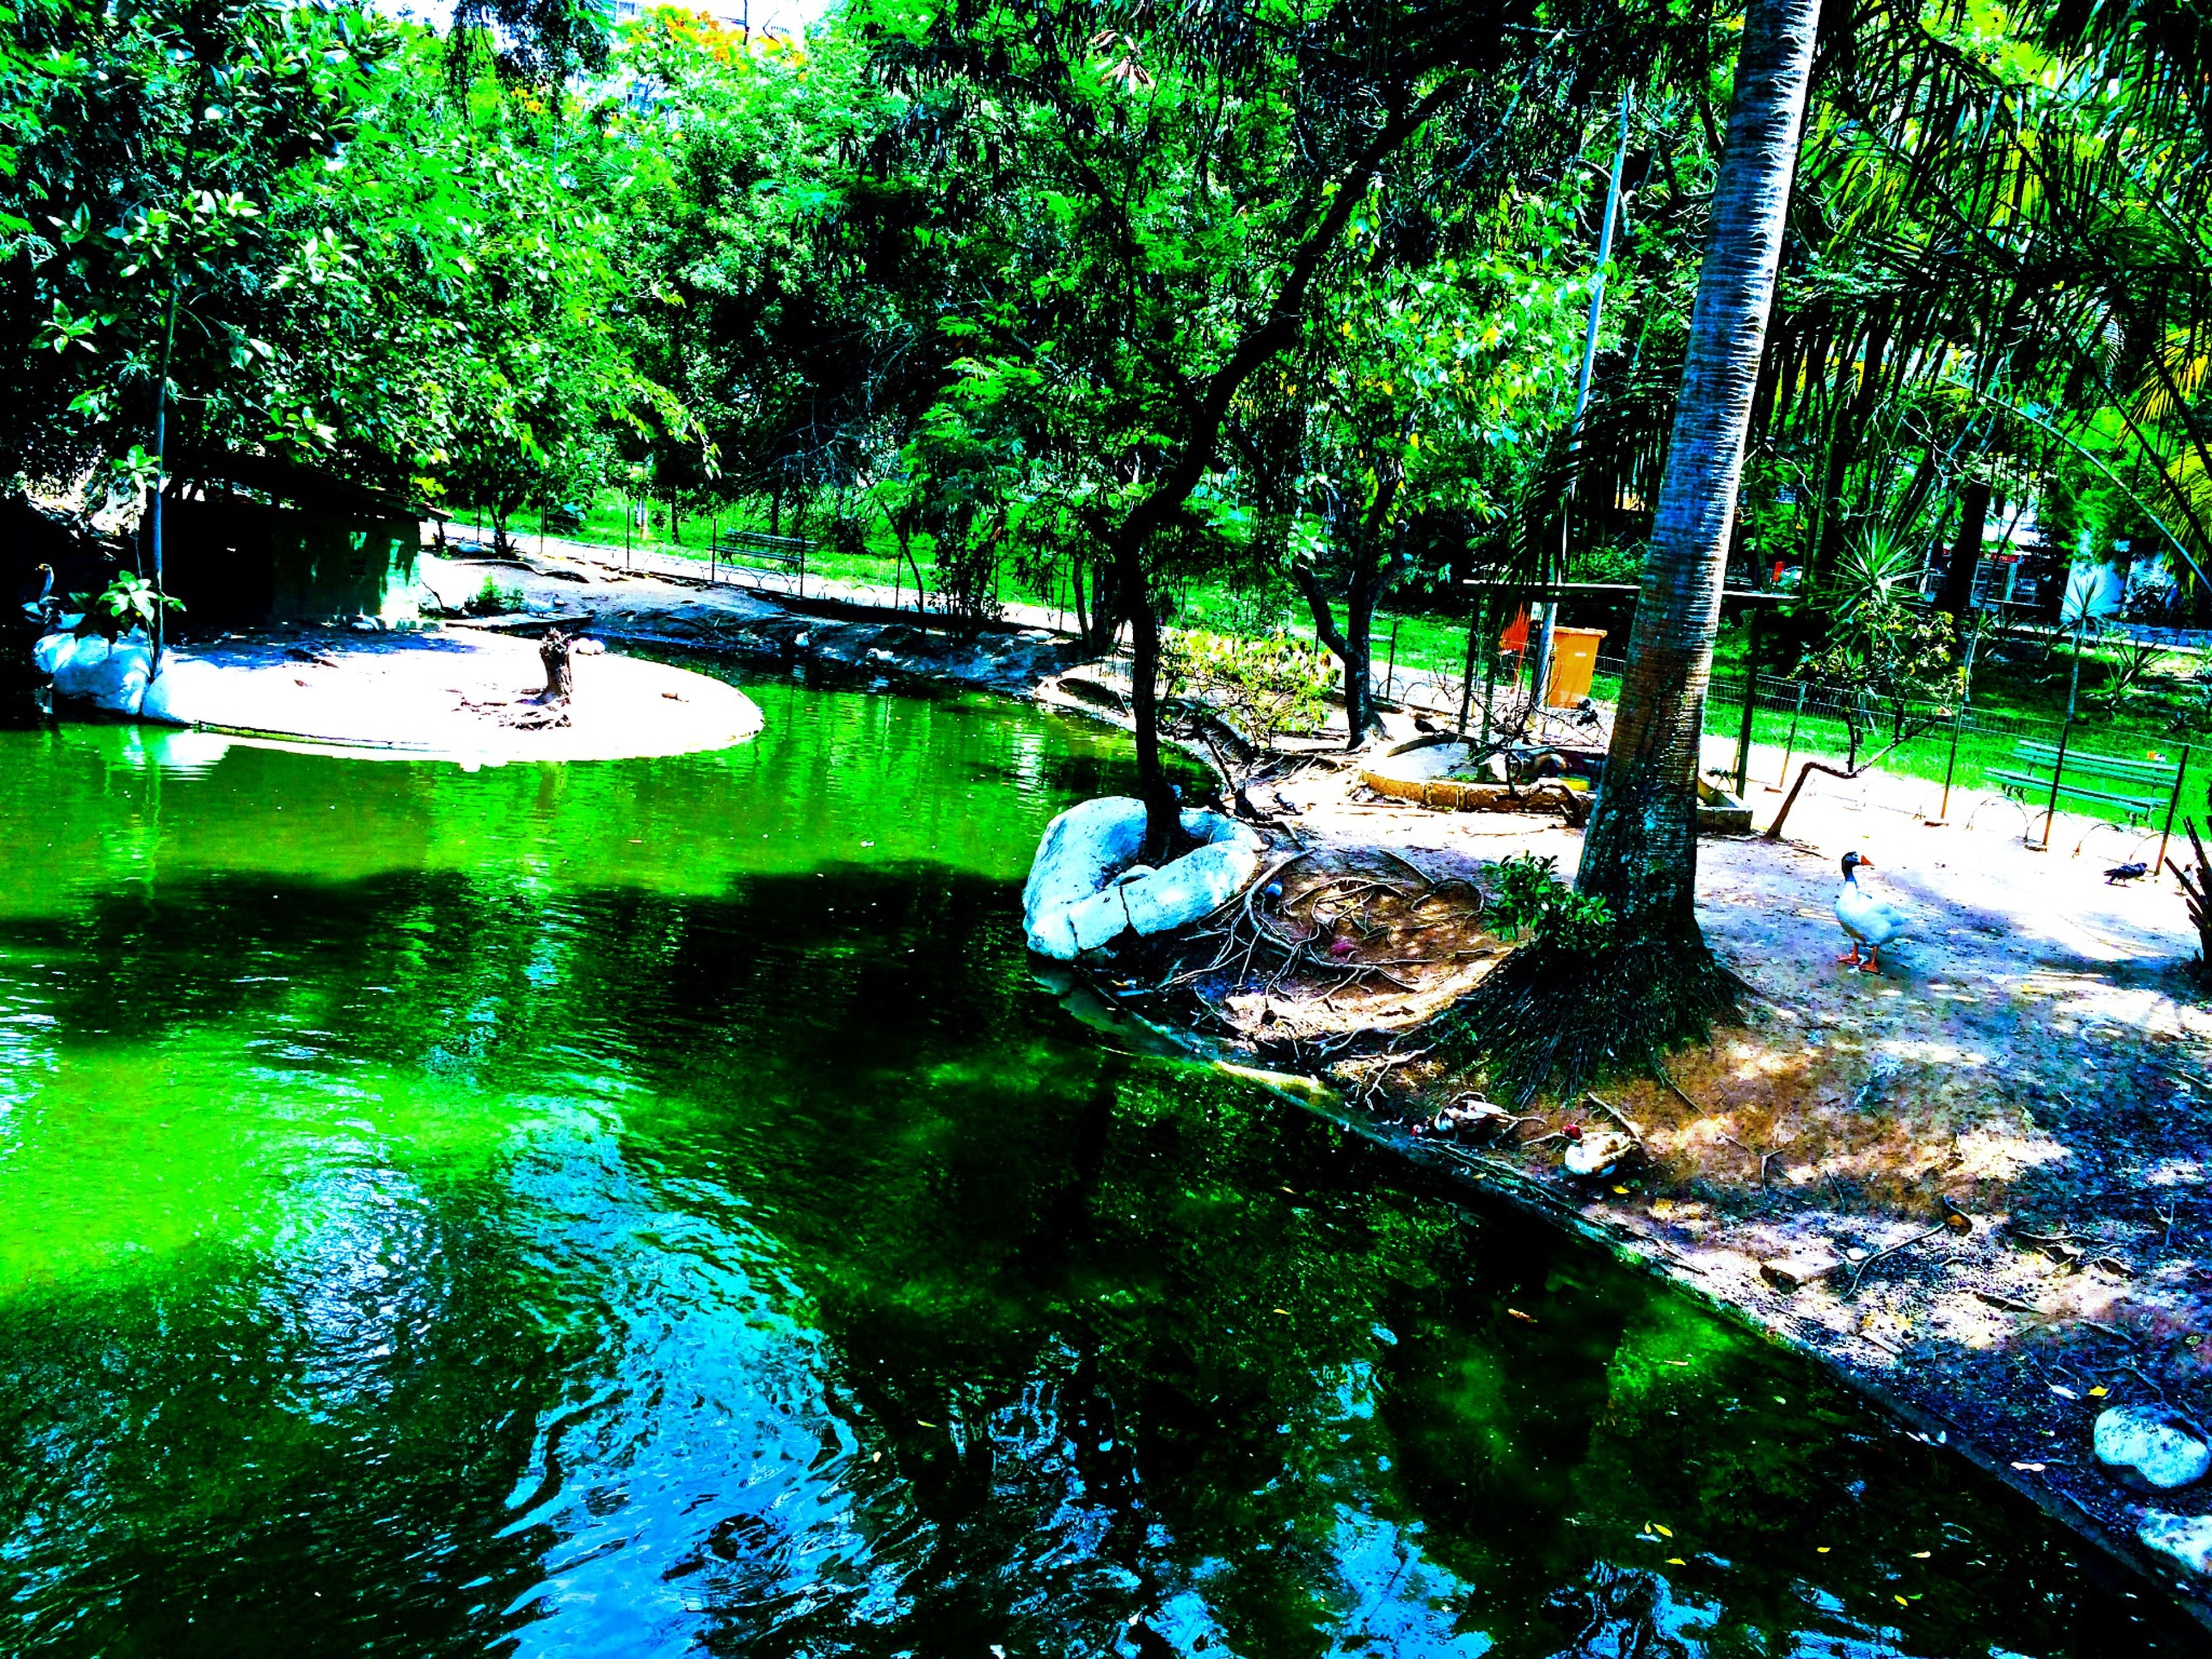 tree, water, reflection, green color, tranquility, growth, river, bridge - man made structure, nature, waterfront, forest, connection, park - man made space, pond, beauty in nature, branch, tranquil scene, tree trunk, day, outdoors